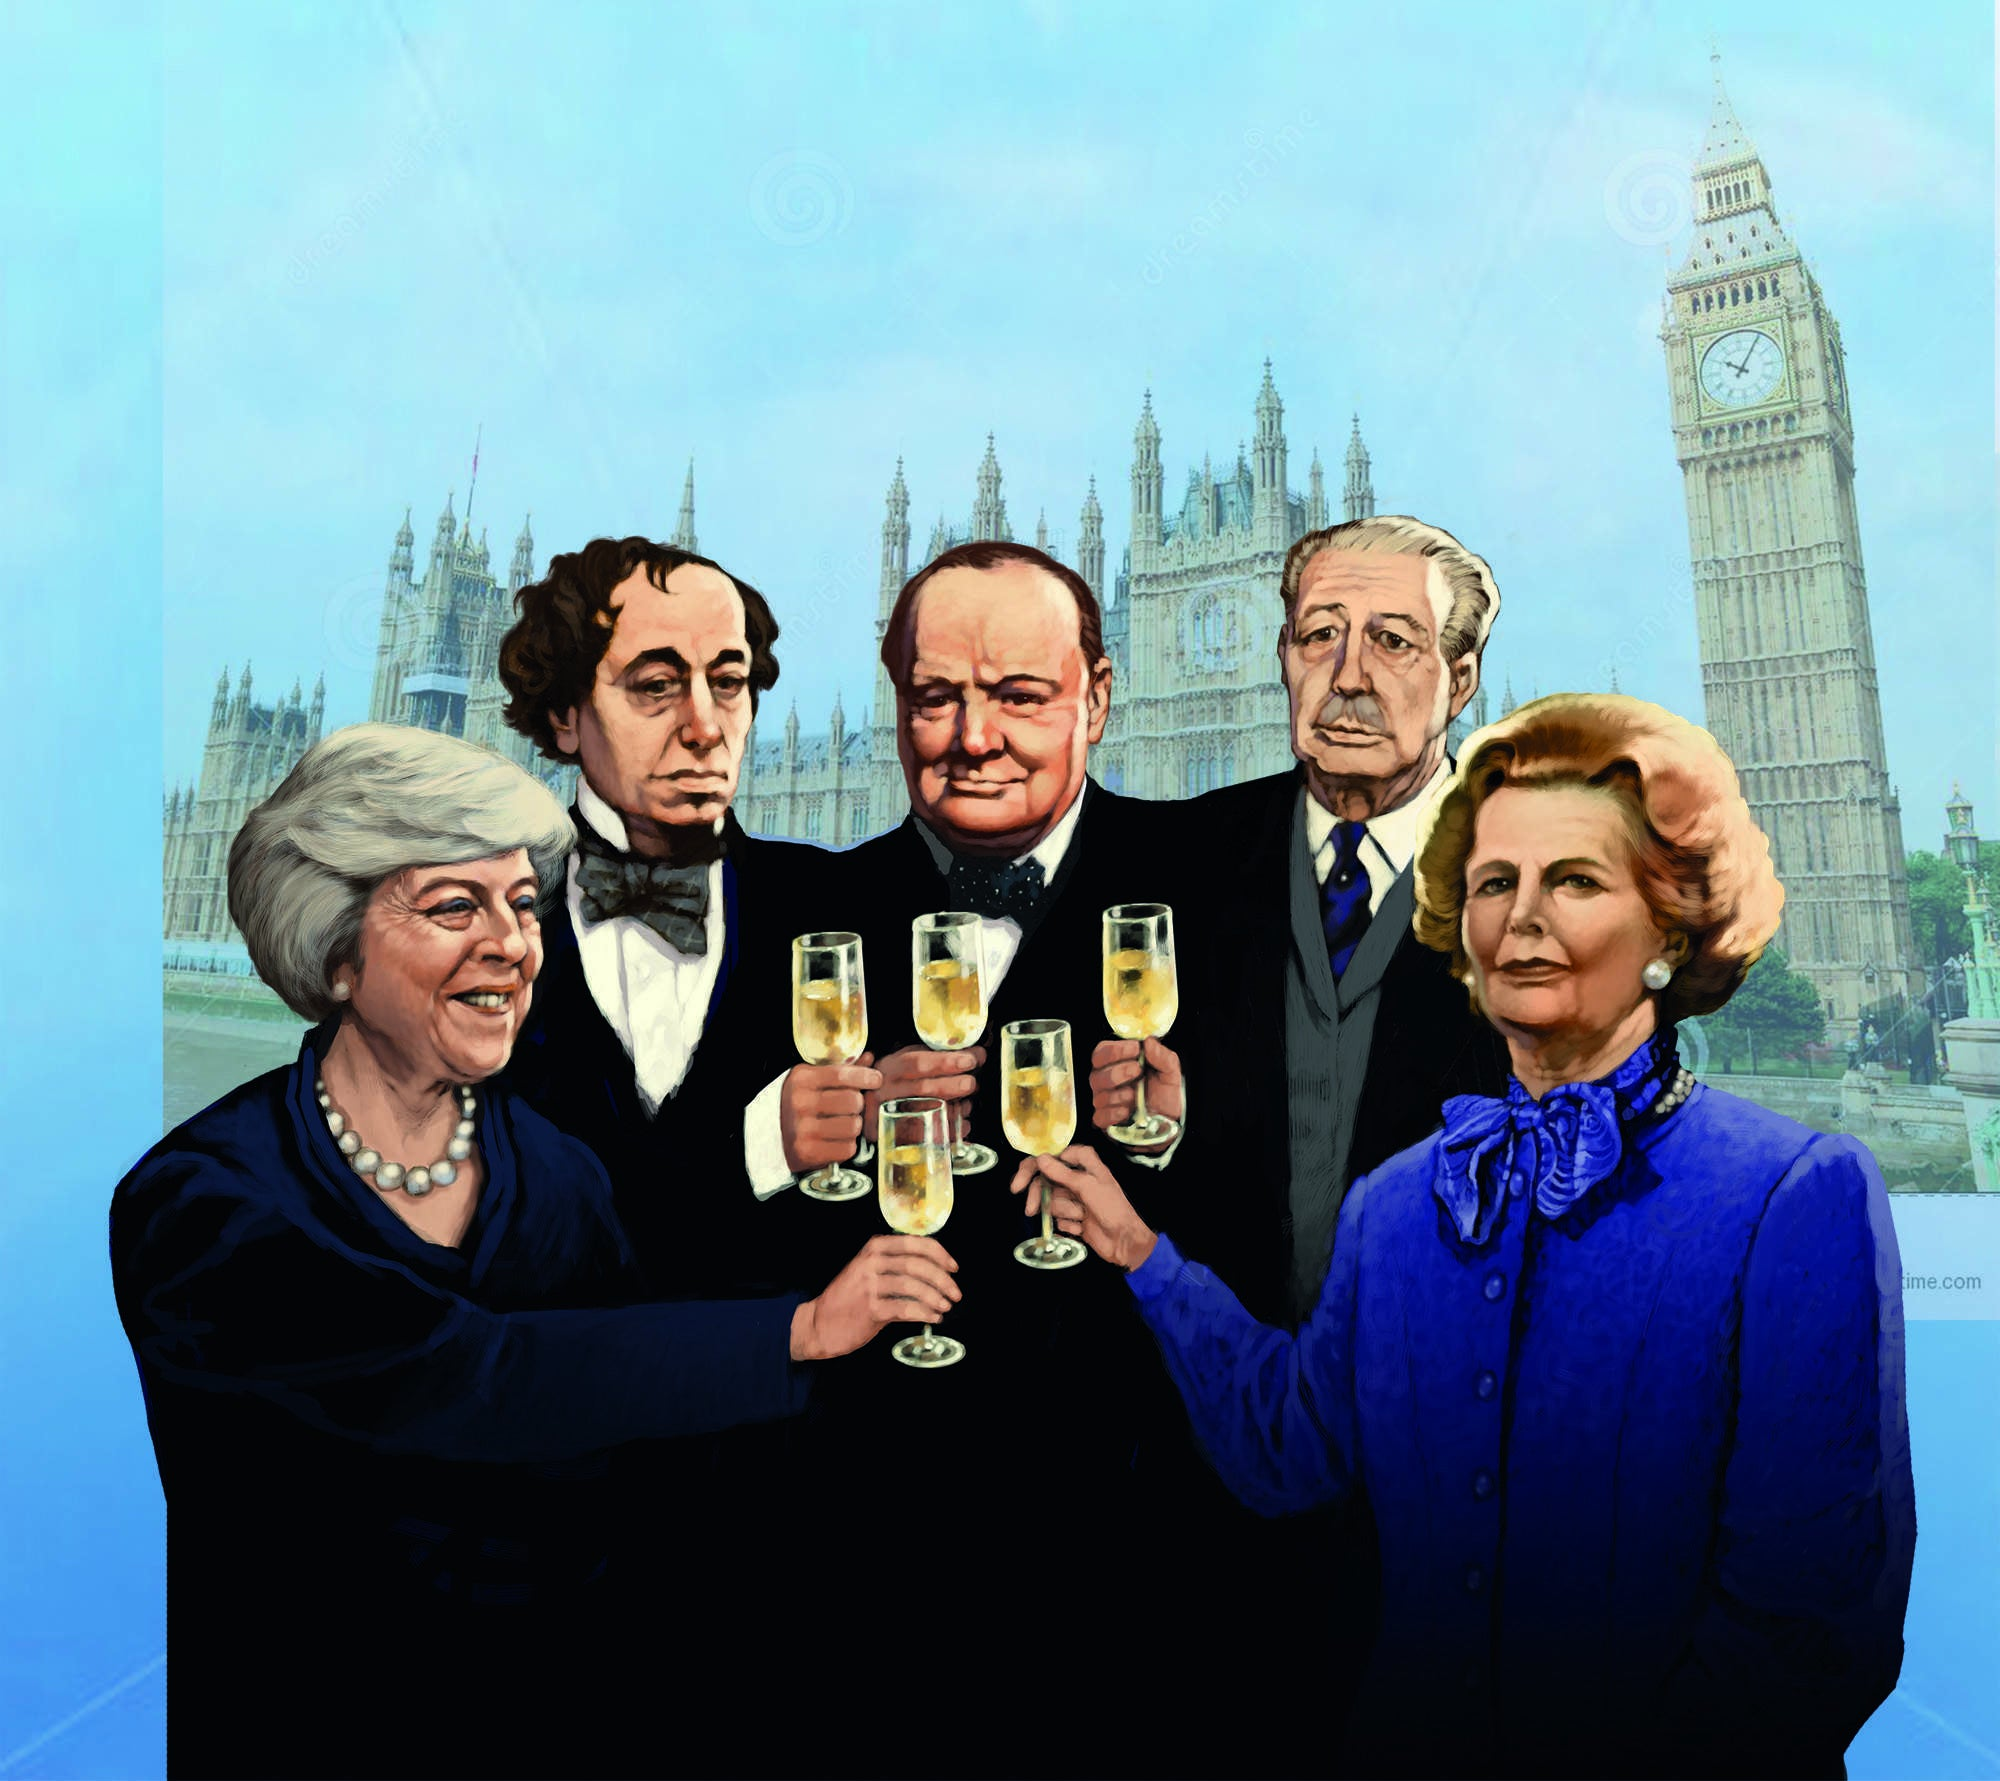 Why the Tories keep winning